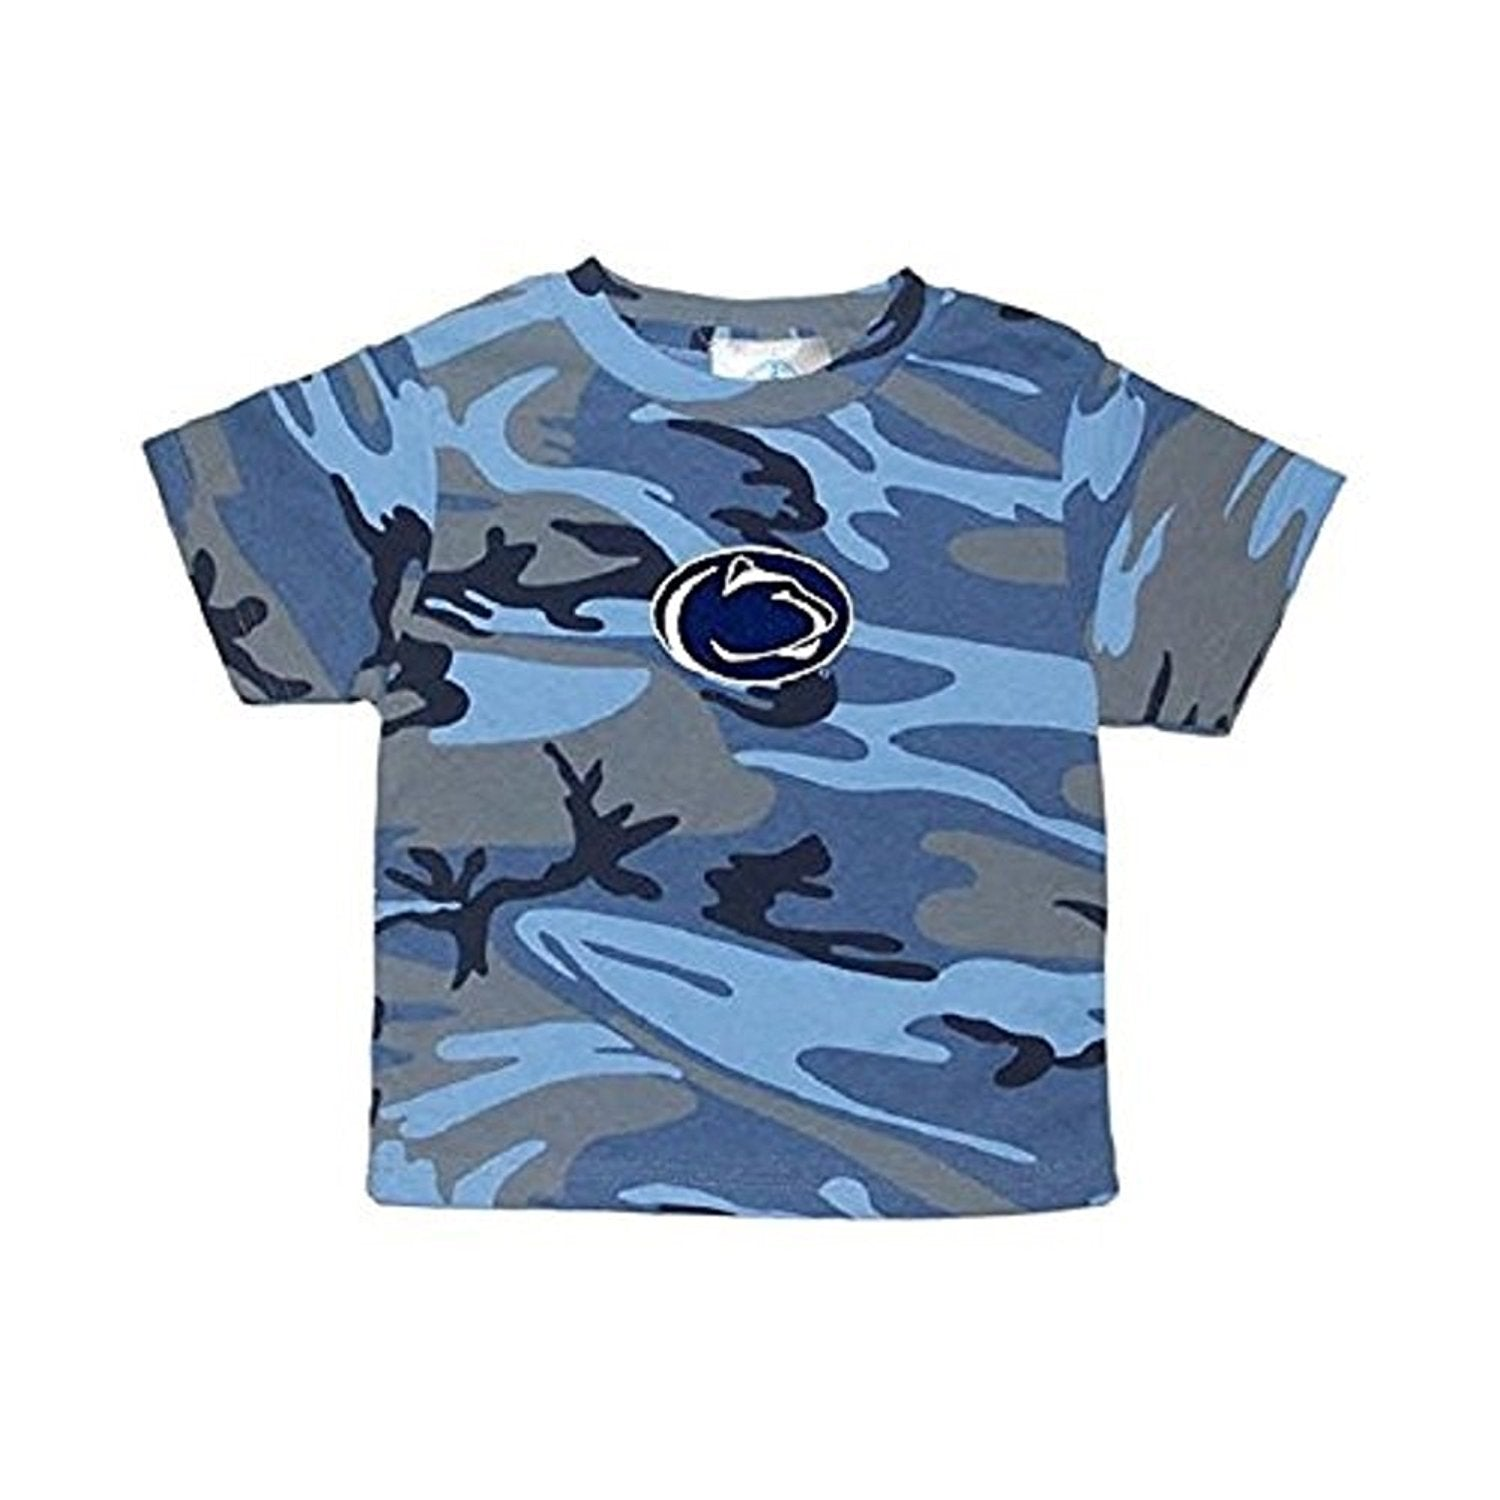 Toddler Boys Penn State Nittany Lions Blue Camo Tee Shirt 14 16 Large –  Interstate Sports fb4b6f4cf23